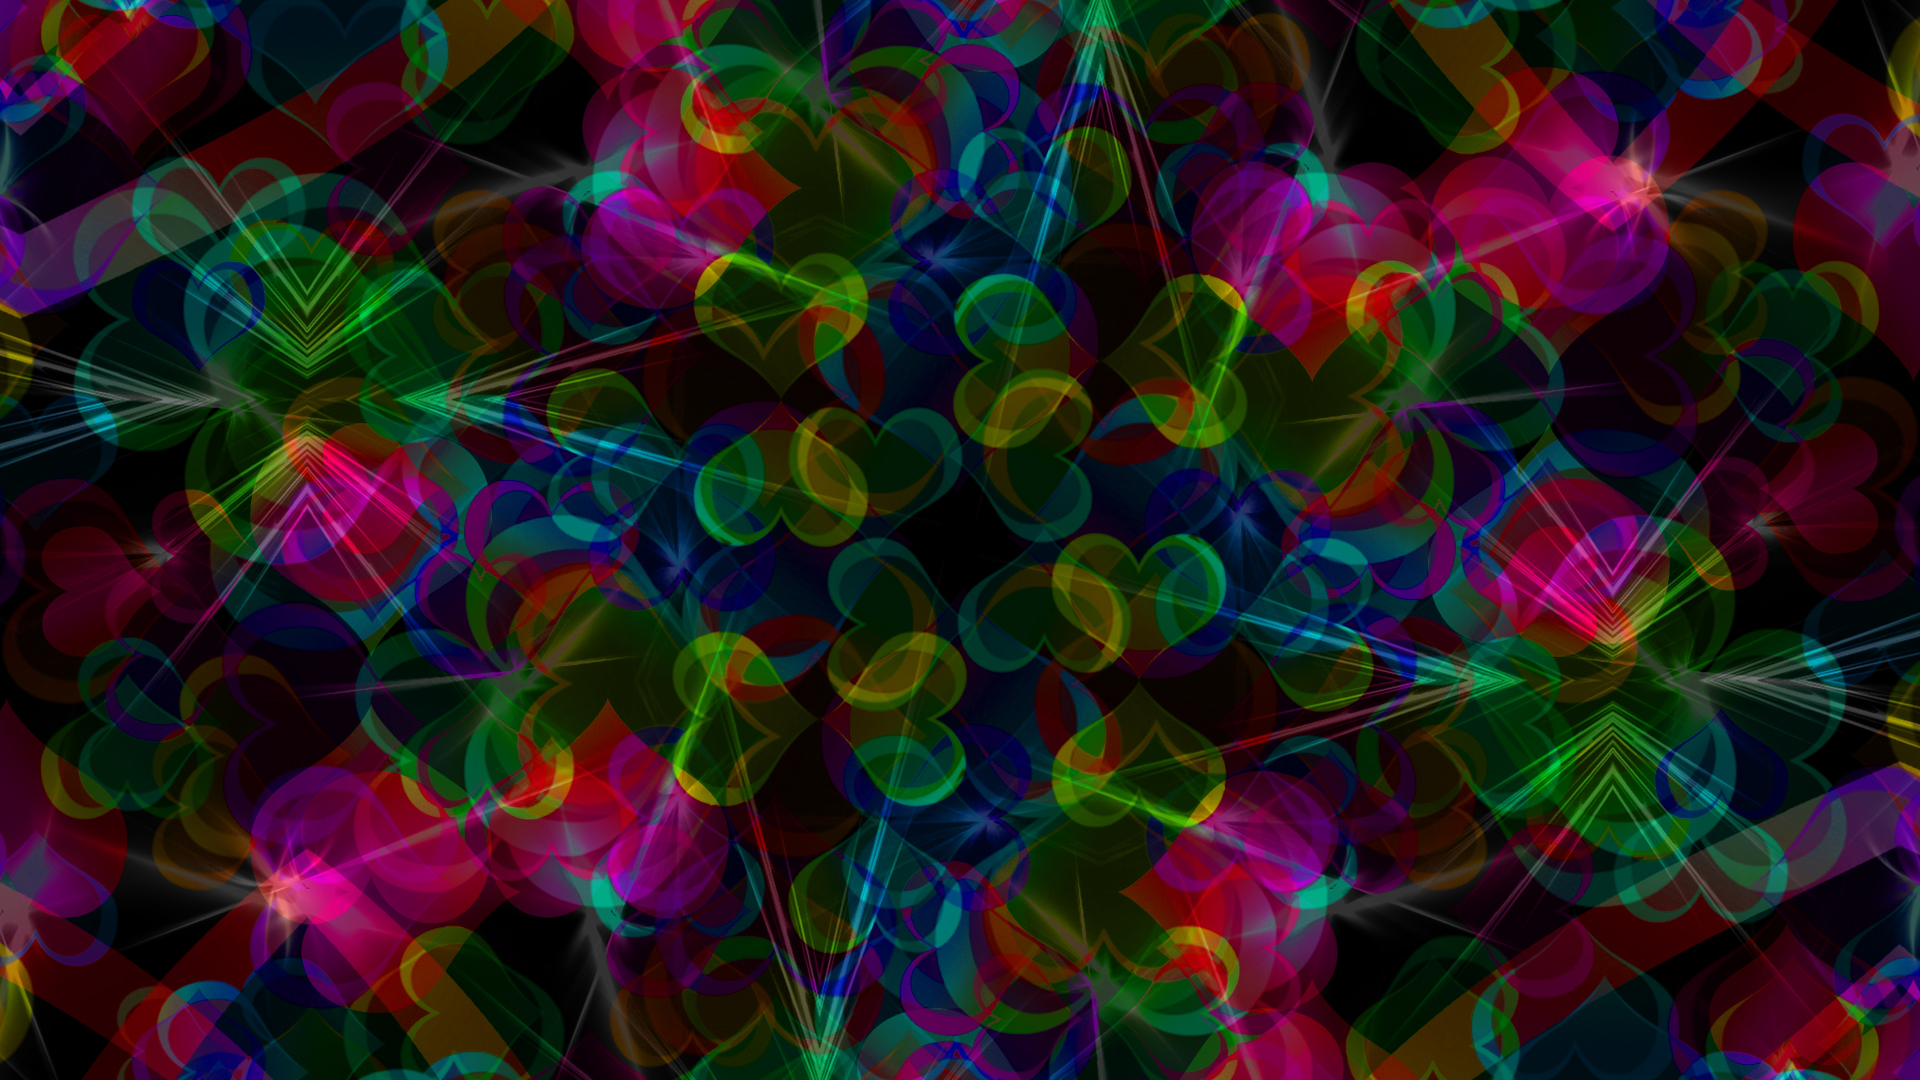 Abstract-02/Colorful Pink Green Blue Red Gradient Heart HD.jpg Desktop